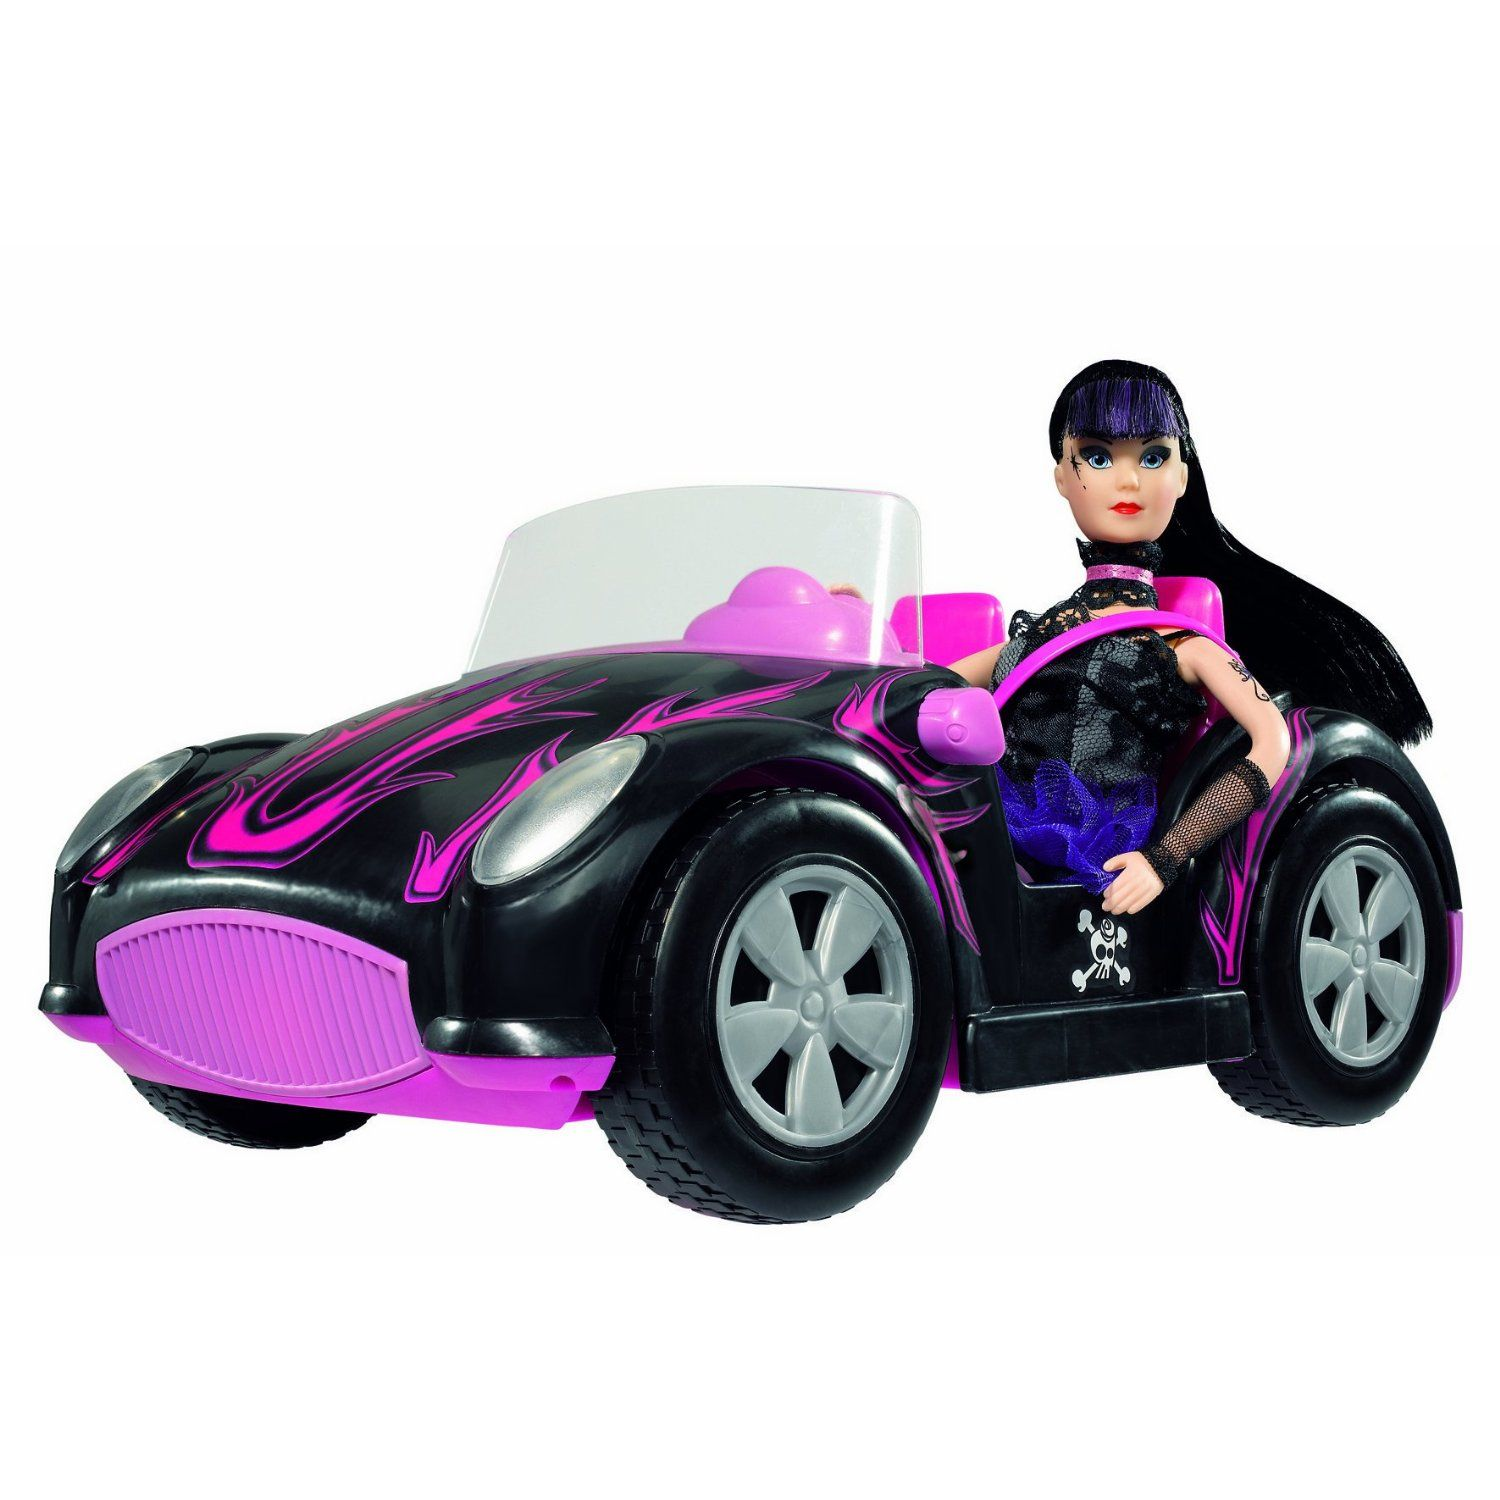 Barbie Doll Car Lots Of New Mystic Girlz Steffi Love And Kevin